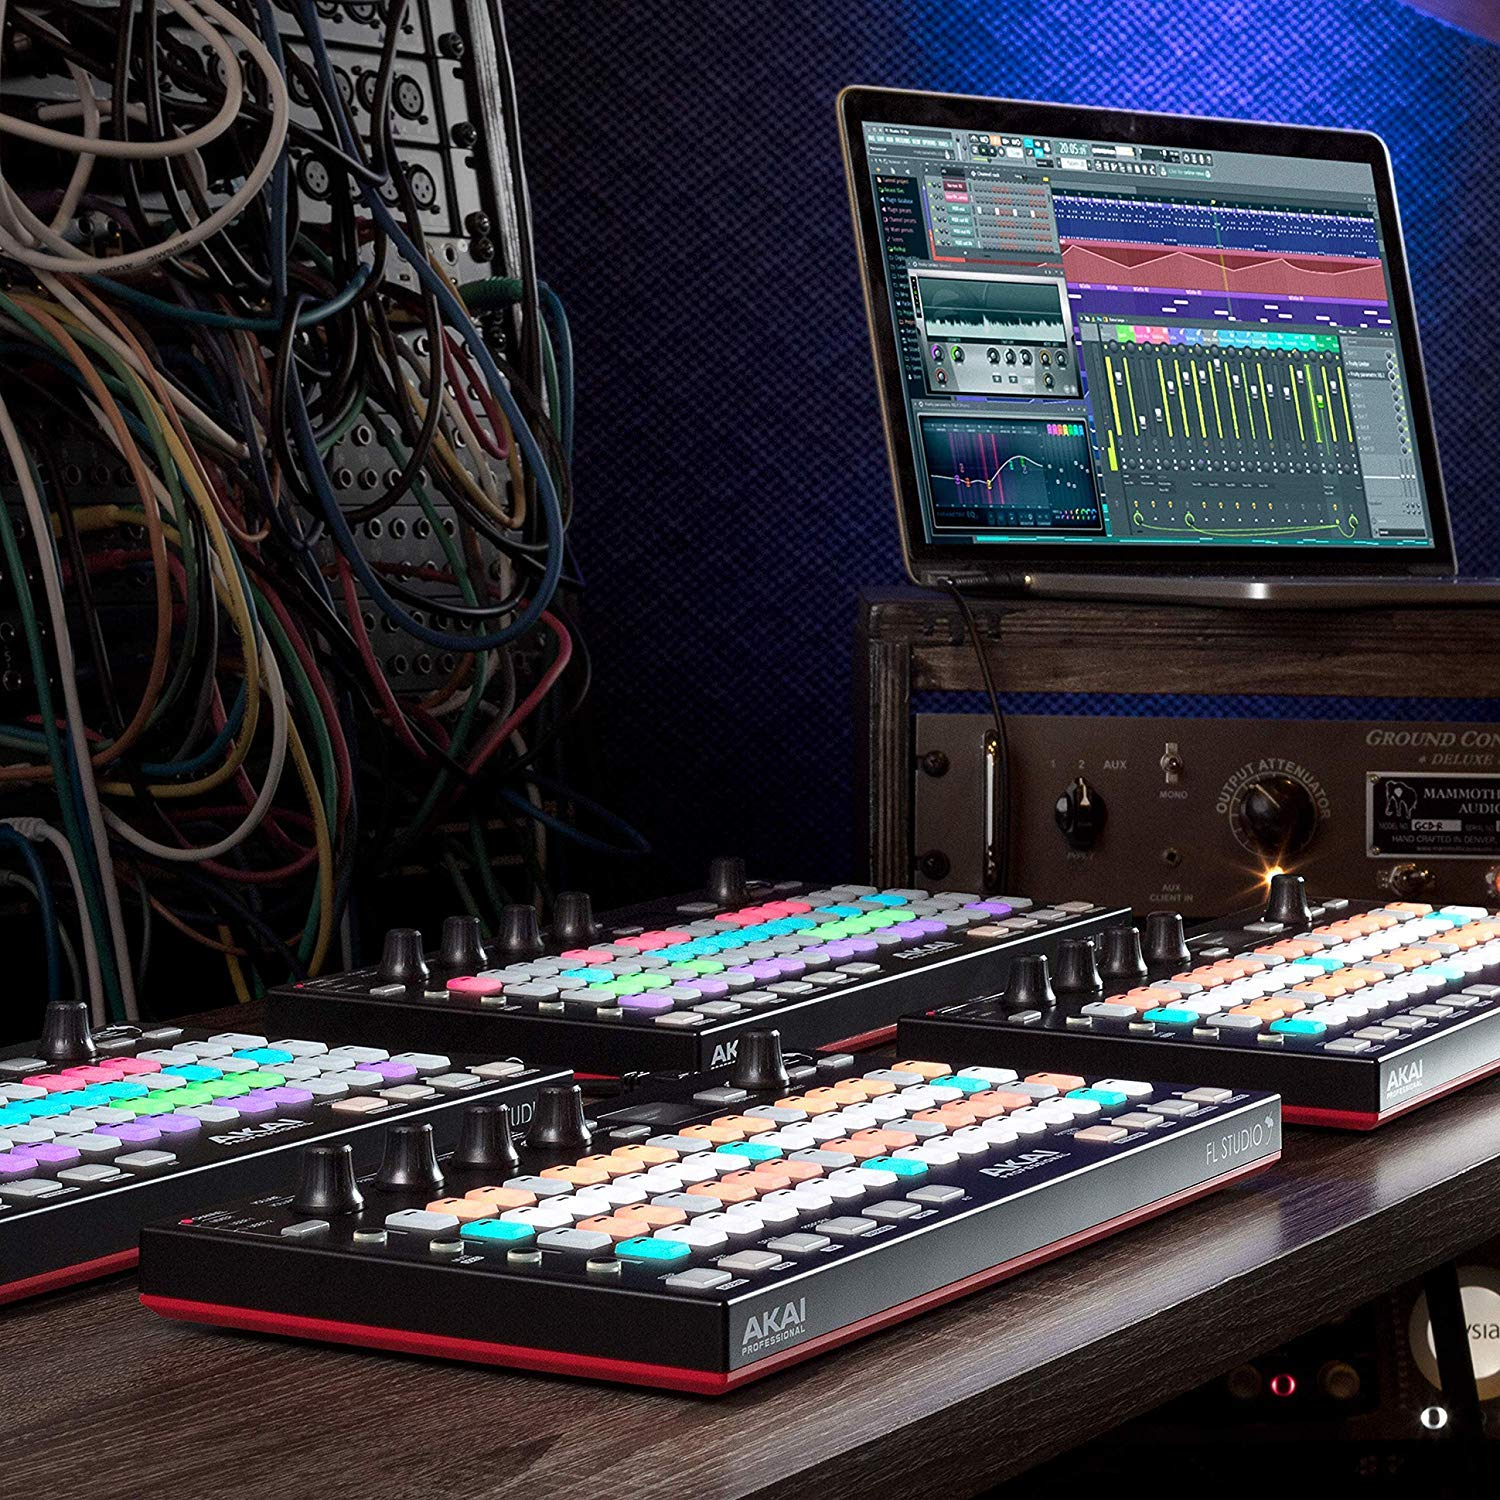 Akai Professional Fire | Performance Controller for FL Studio With 4 x 16 Velocity-Sensitive RGB Clip Matrix, OLED Display and FL Studio Fruity Fire Edition Included by Akai Professional (Image #6)